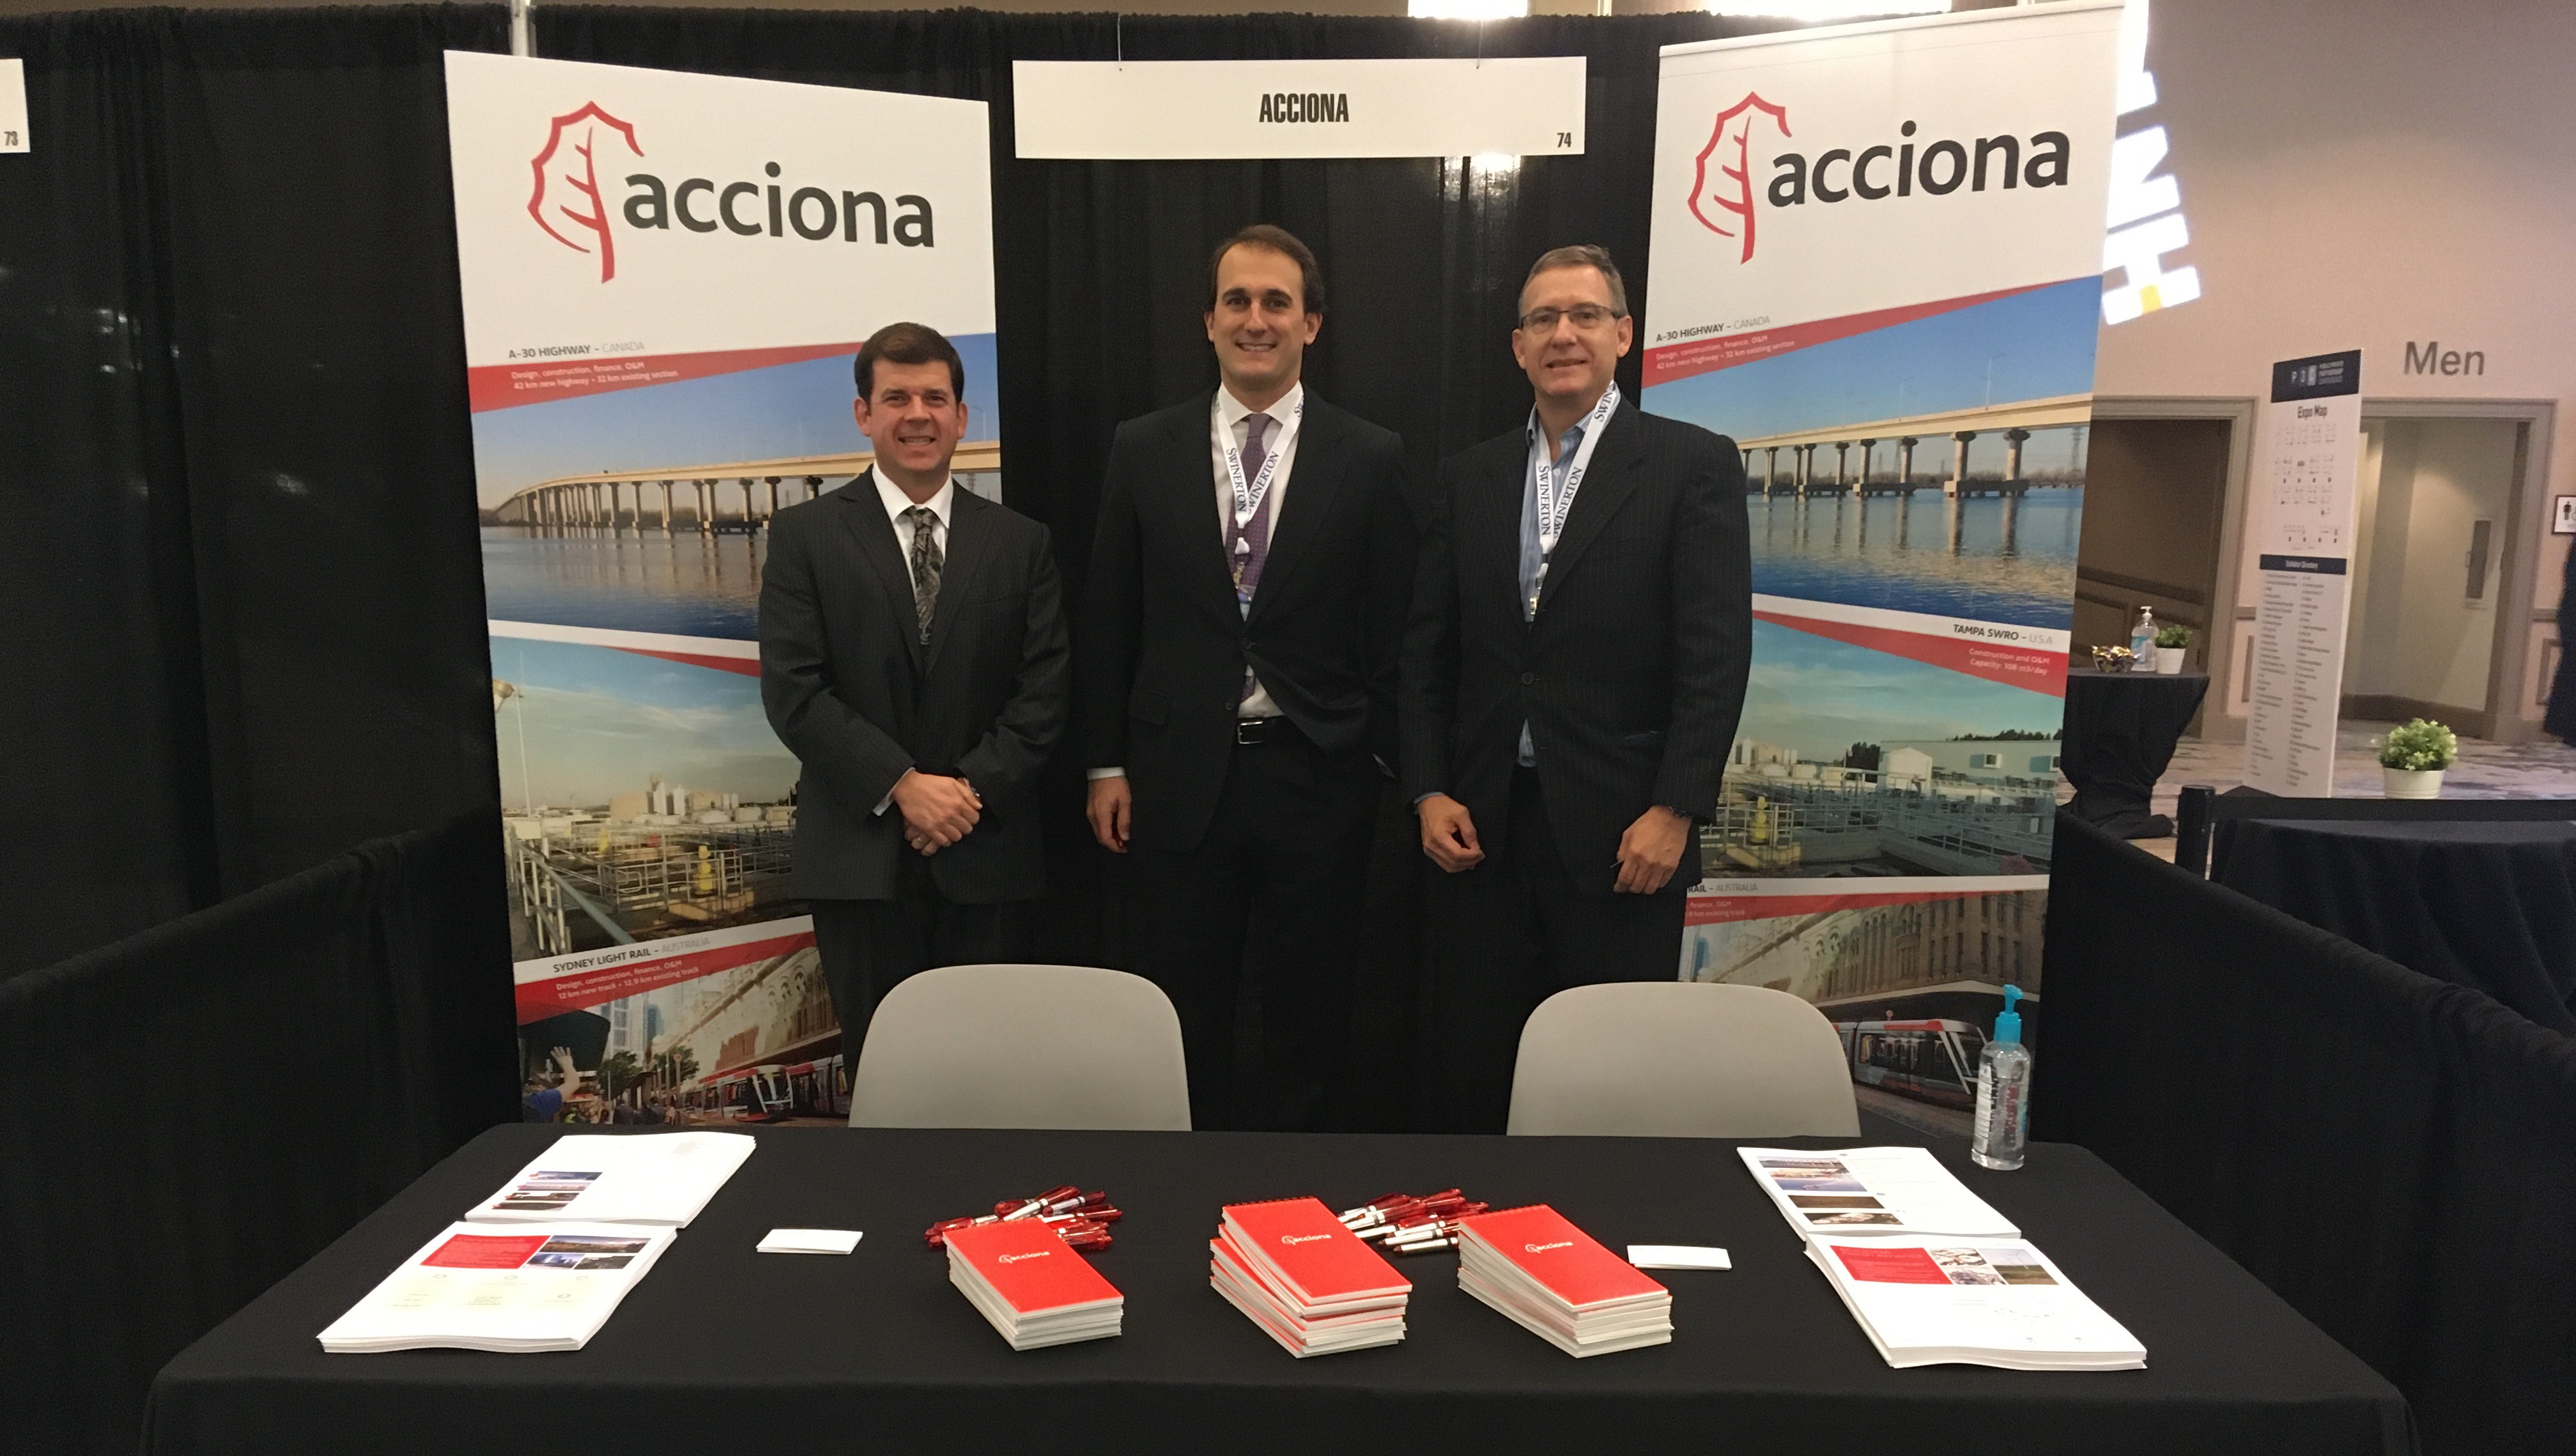 ACCIONA sponsors 2020 P3 Conference in Dallas